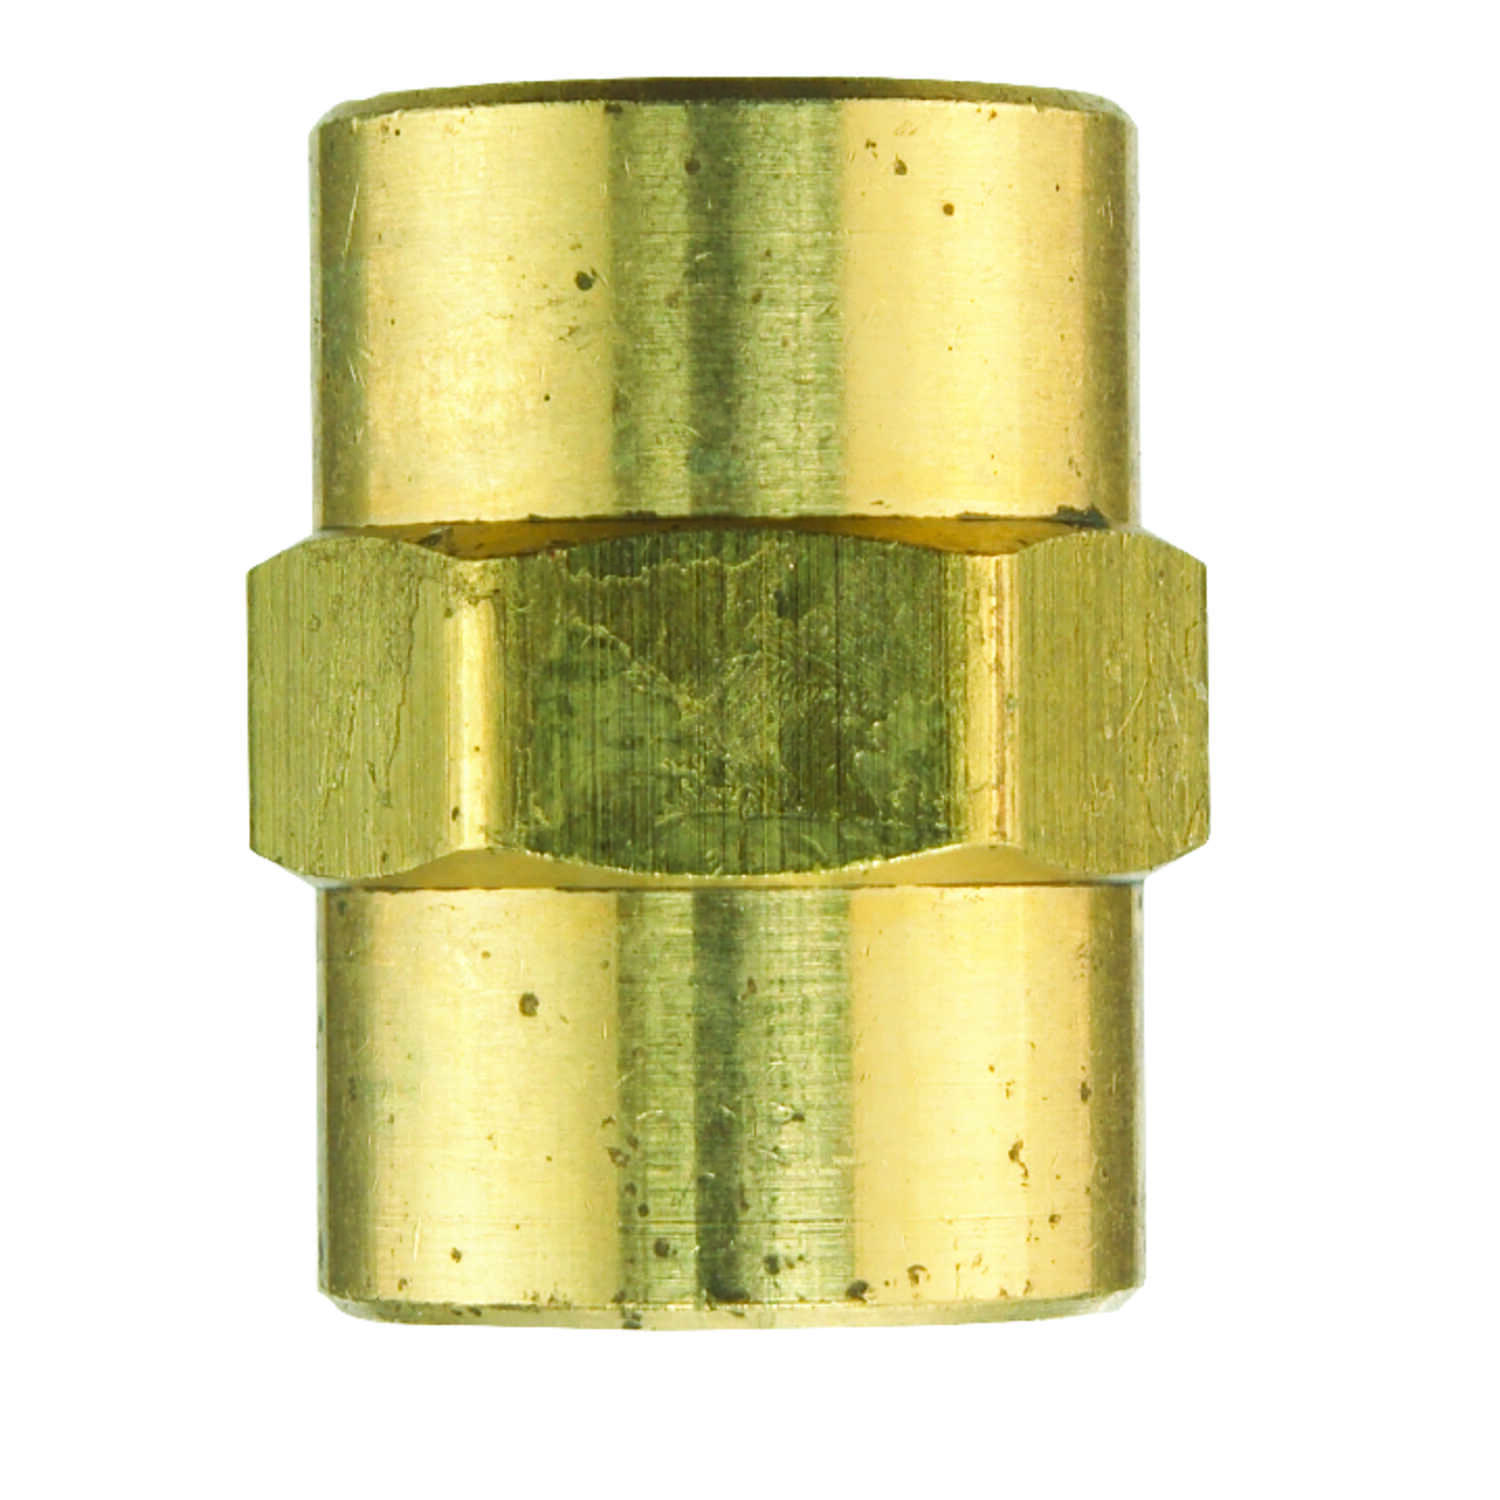 JMF  1/8 in. Dia. x 1/8 in. Dia. FPT To FPT  Yellow Brass  Coupling